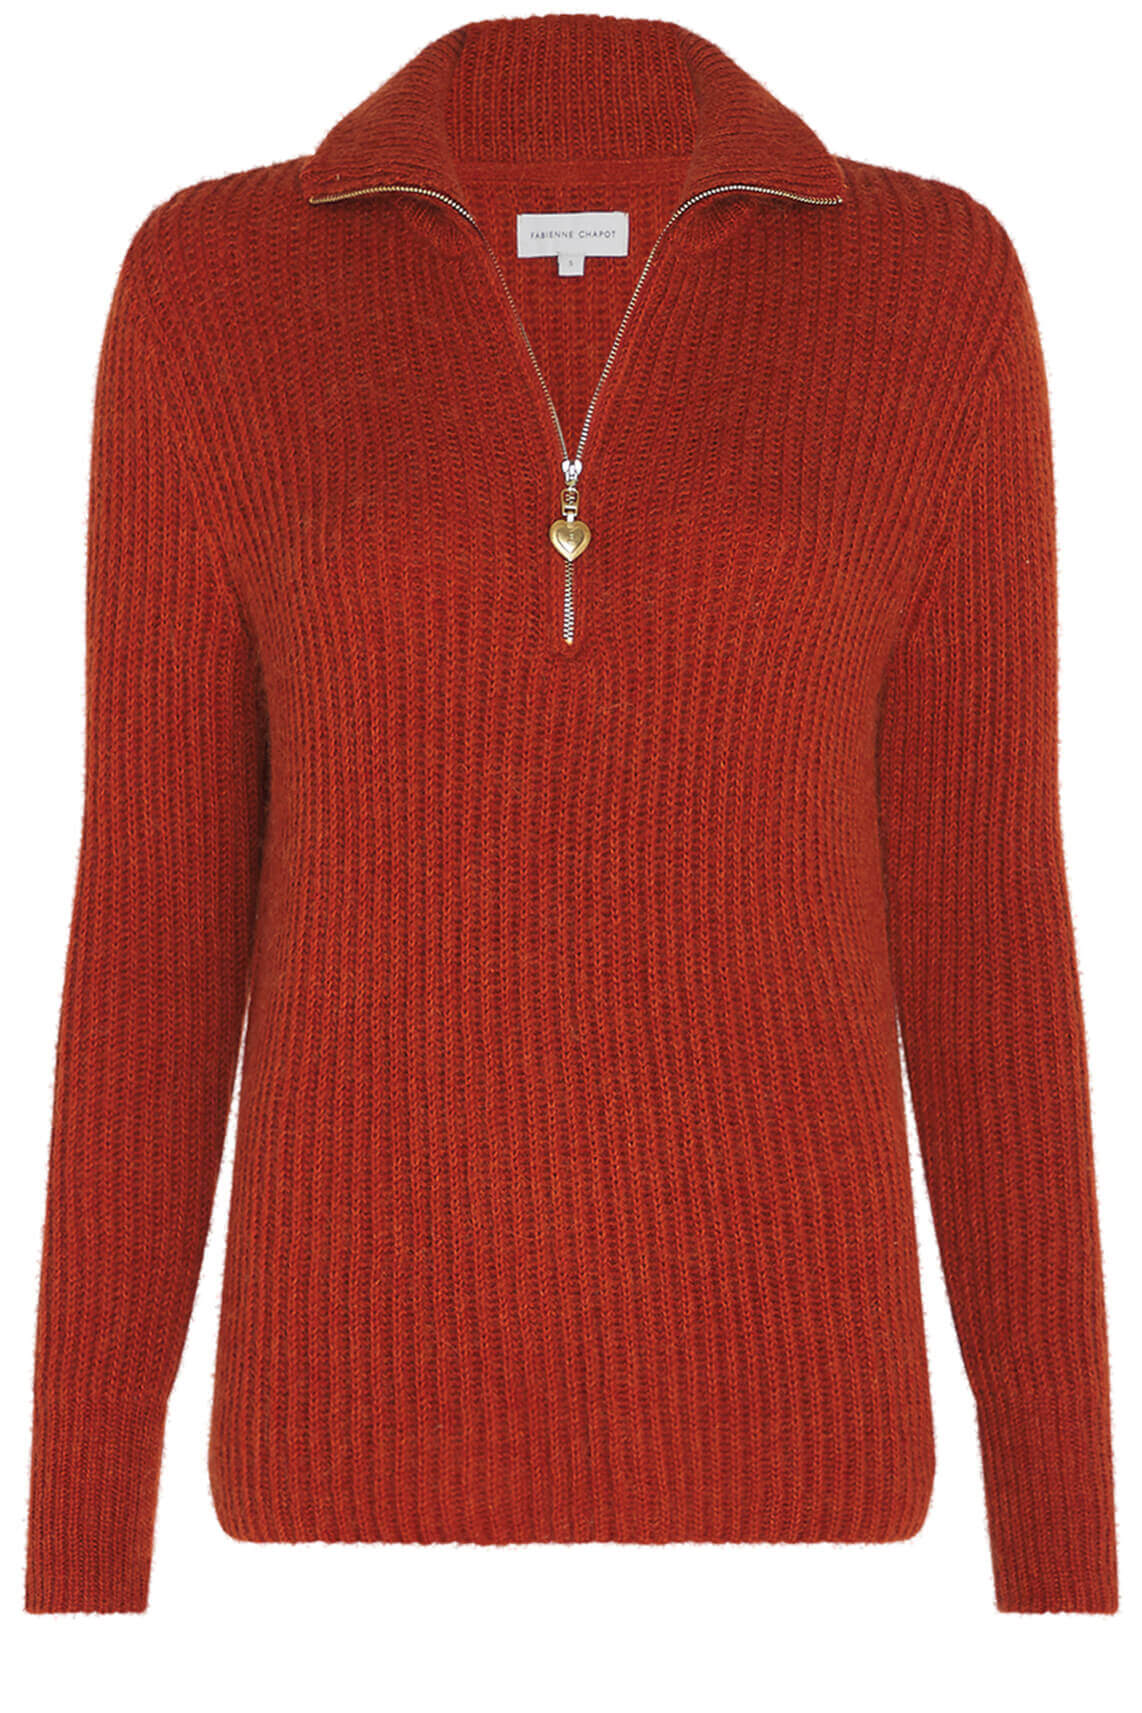 Fabienne Chapot Dames Isa pullover Rood